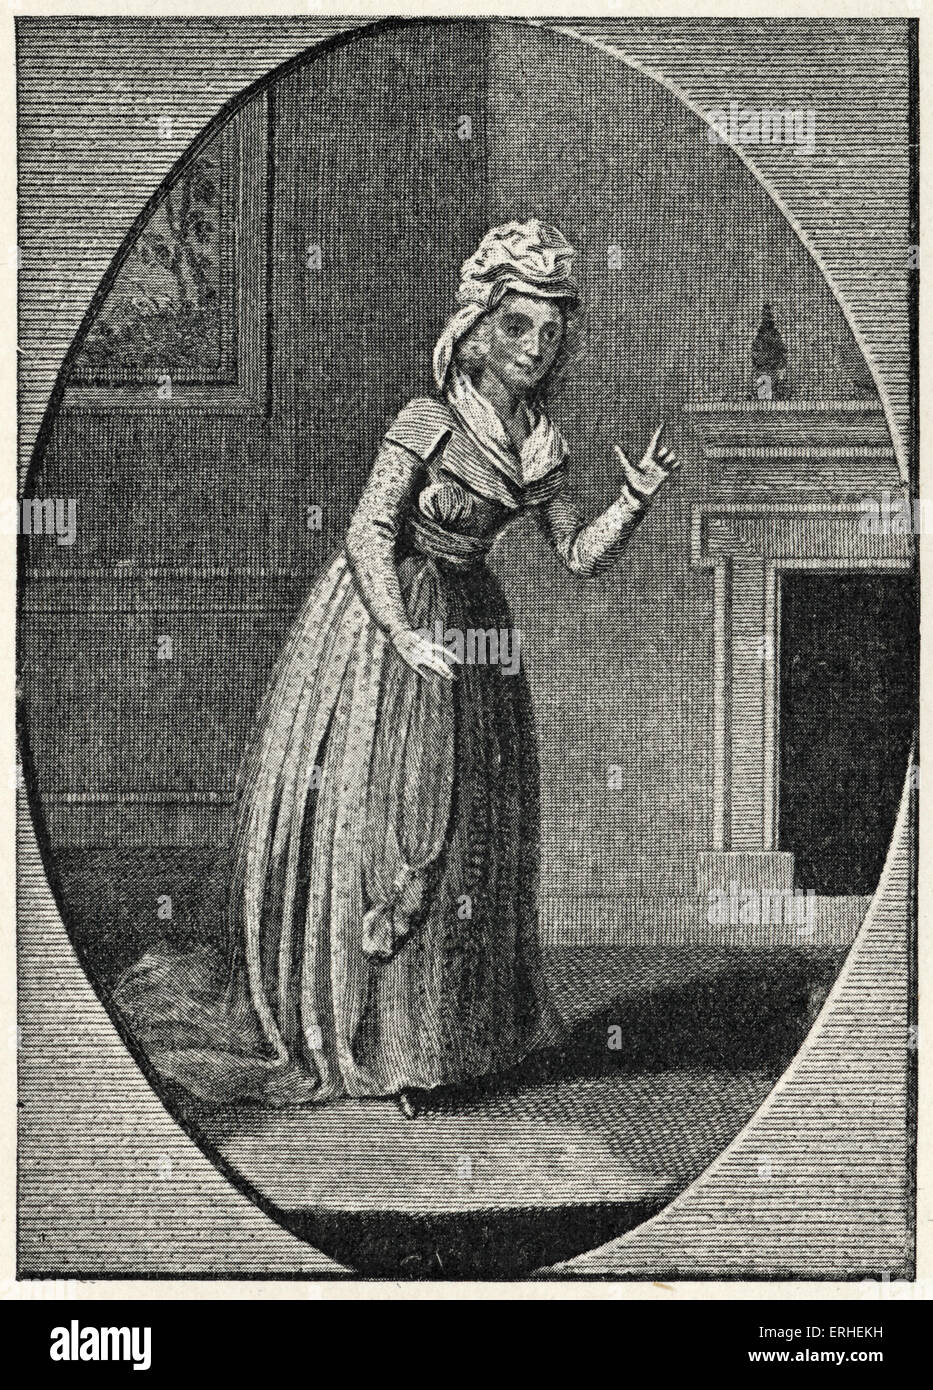 John Gay - illustration - Mrs Crouch as Polly - 'The Beggar's Opera' 1685-1732 - from old print - Stock Image